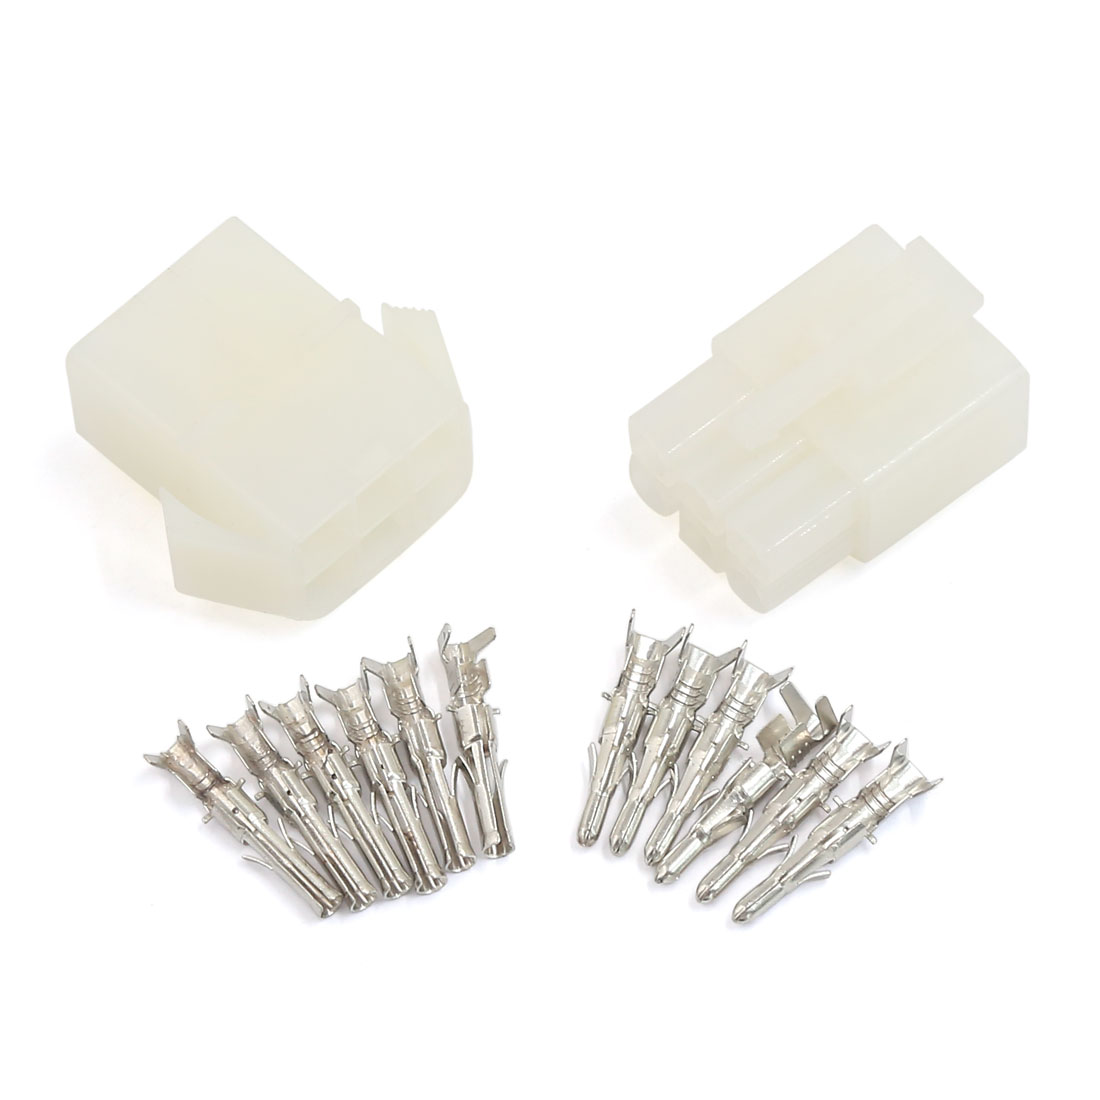 L6.2 Electrical Wiring Latching Connectors Quick Disconnect 6-pin Wire Kit